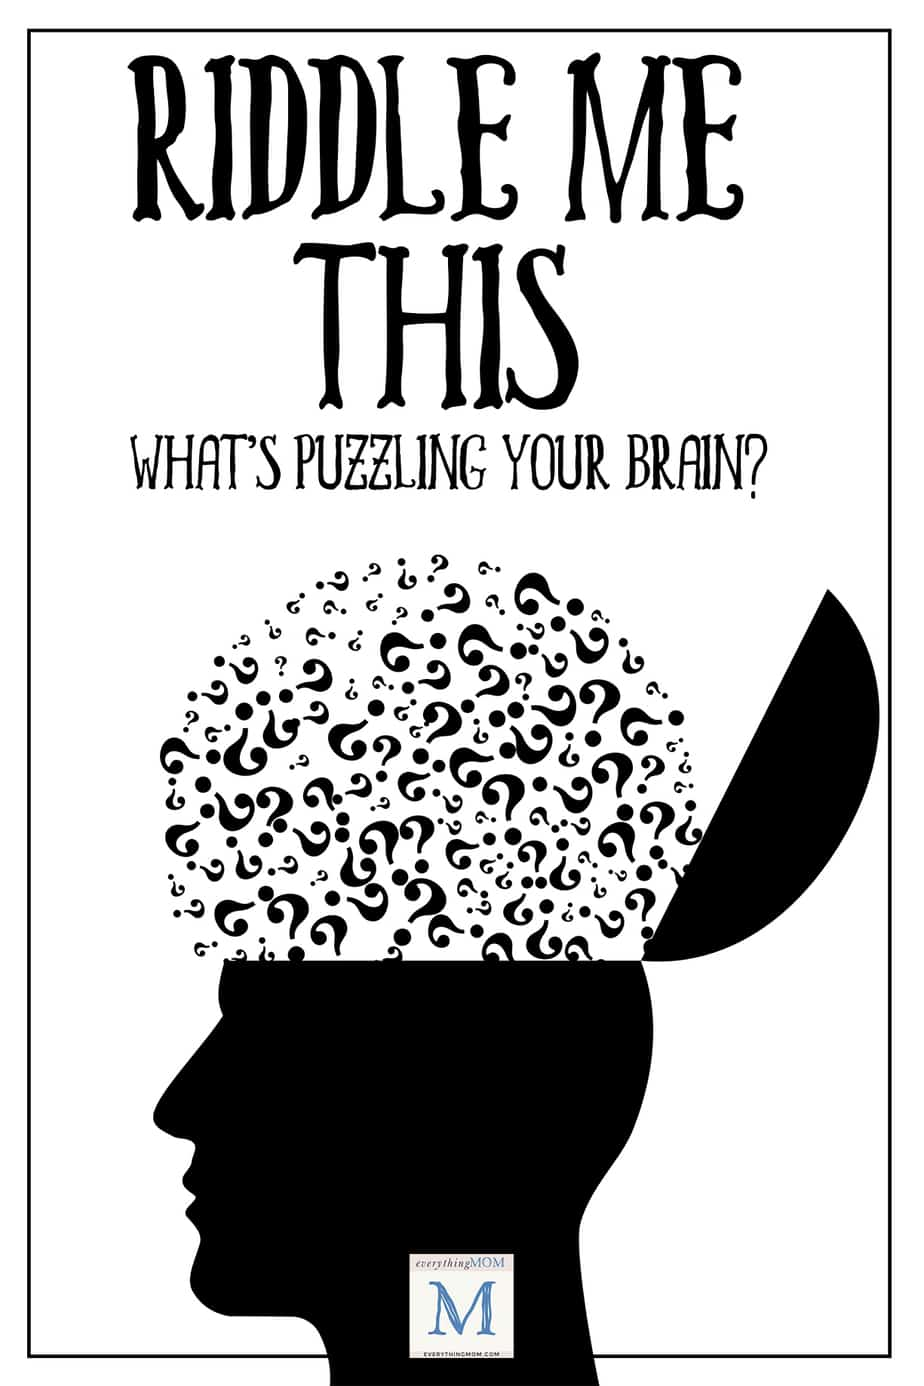 Riddle Me This: What's Puzzling Your Brain?